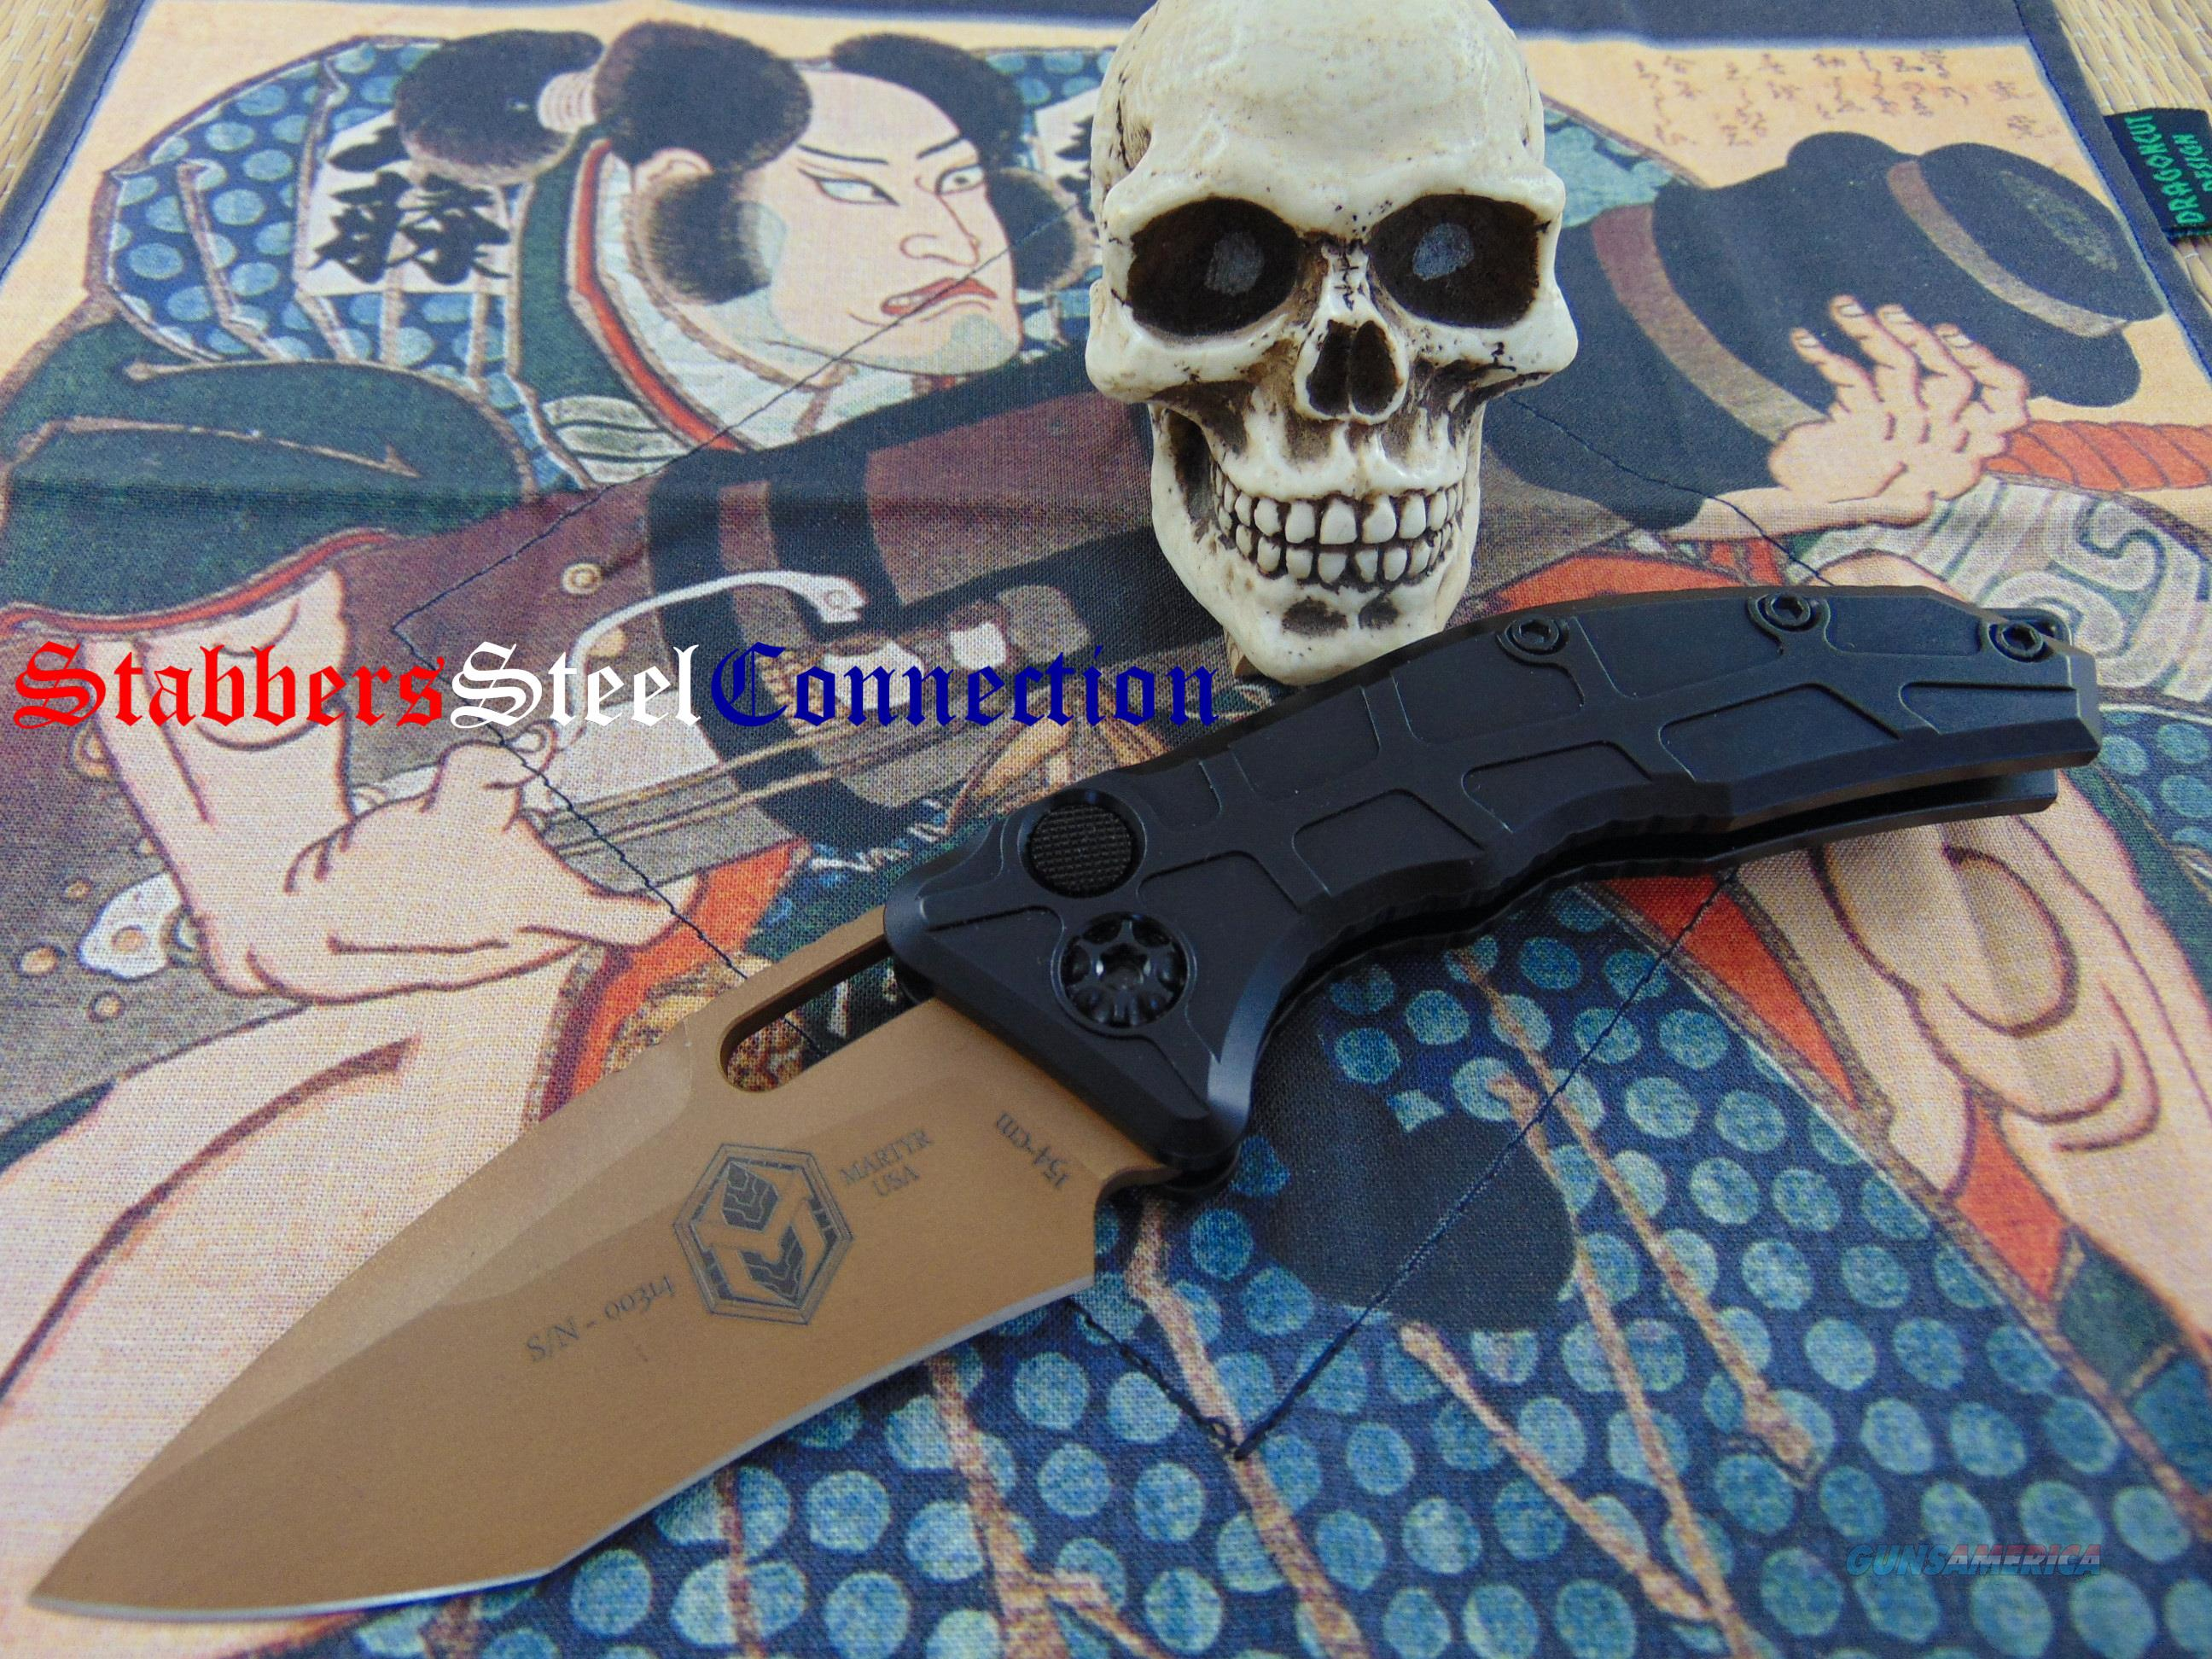 Heretic Knives / Anthony Marfione Jr Martyr Auto Tan Tanto Recurve  Non-Guns > Knives/Swords > Knives > Folding Blade > Hand Made